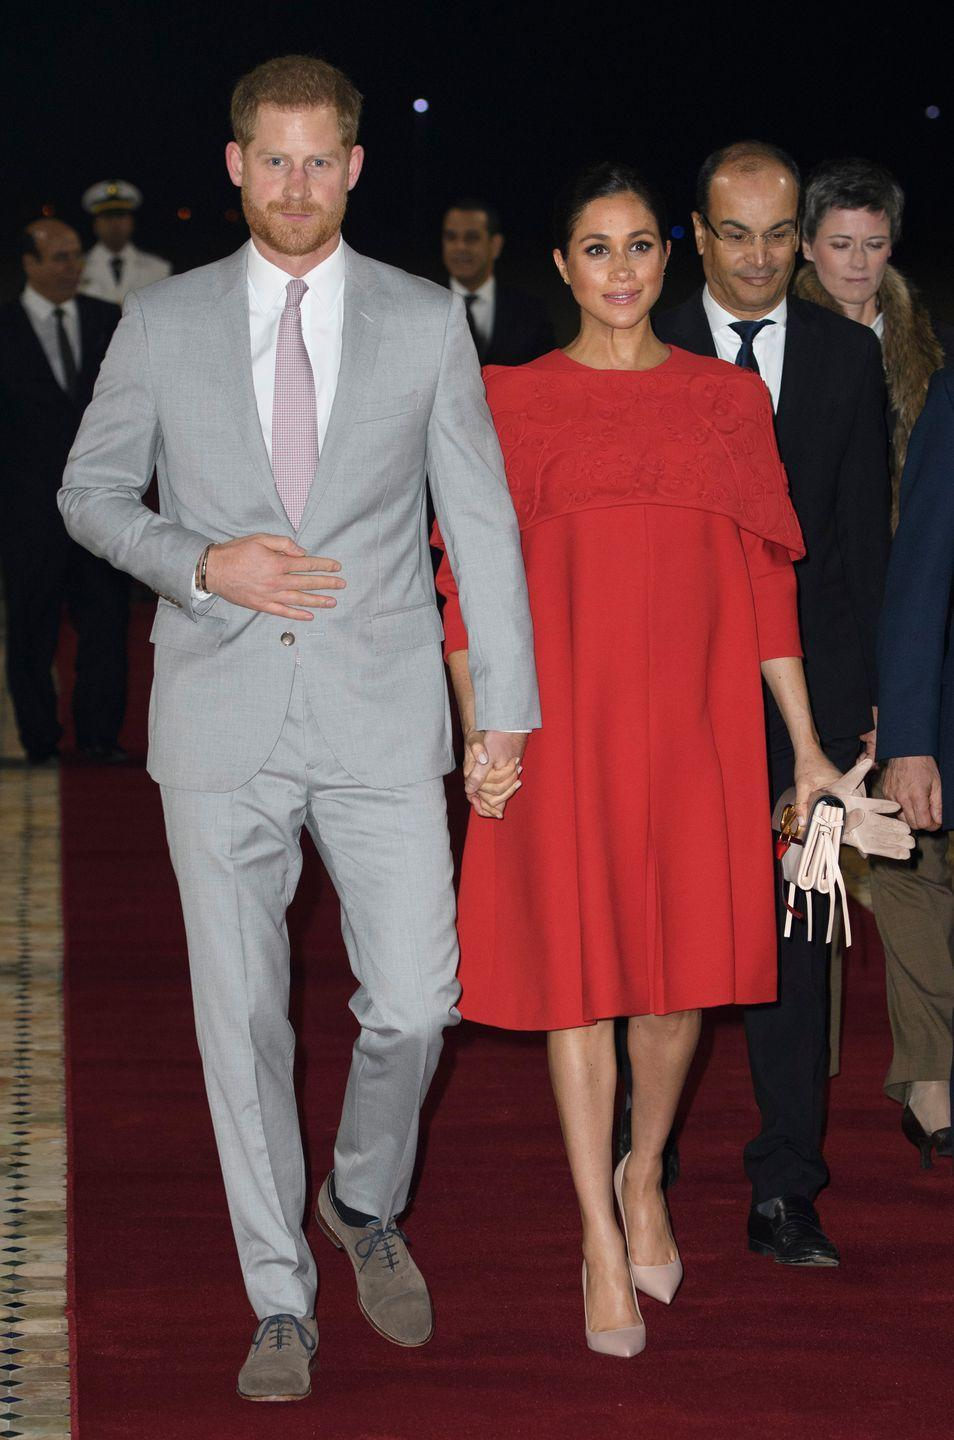 """<p>The Duchess of Sussex wore a red Valentino cape dress and nude pumps as she arrived with Prince Harry in Casablanca, Morocco to start off their royal tour. Meghan carried a pair of beige gloves and a <a href=""""https://go.redirectingat.com?id=74968X1596630&url=https%3A%2F%2Fwww.farfetch.com%2Fshopping%2Fwomen%2Fvalentino%2Fitems.aspx&sref=https%3A%2F%2Fwww.townandcountrymag.com%2Fstyle%2Ffashion-trends%2Fg3272%2Fmeghan-markle-preppy-style%2F"""" rel=""""nofollow noopener"""" target=""""_blank"""" data-ylk=""""slk:Valentino Garavani"""" class=""""link rapid-noclick-resp"""">Valentino Garavani</a> clutch. </p><p><a class=""""link rapid-noclick-resp"""" href=""""https://go.redirectingat.com?id=74968X1596630&url=https%3A%2F%2Fwww.neimanmarcus.com%2Fp%2Fvalentino-garavani-vee-ring-medium-colorblock-leather-shoulder-bag-prod218040102&sref=https%3A%2F%2Fwww.townandcountrymag.com%2Fstyle%2Ffashion-trends%2Fg3272%2Fmeghan-markle-preppy-style%2F"""" rel=""""nofollow noopener"""" target=""""_blank"""" data-ylk=""""slk:Shop Similar"""">Shop Similar</a> <em>Vee Ring Medium Shoulder Bag, Valentino Garavani, $3,295</em><em><br></em></p>"""